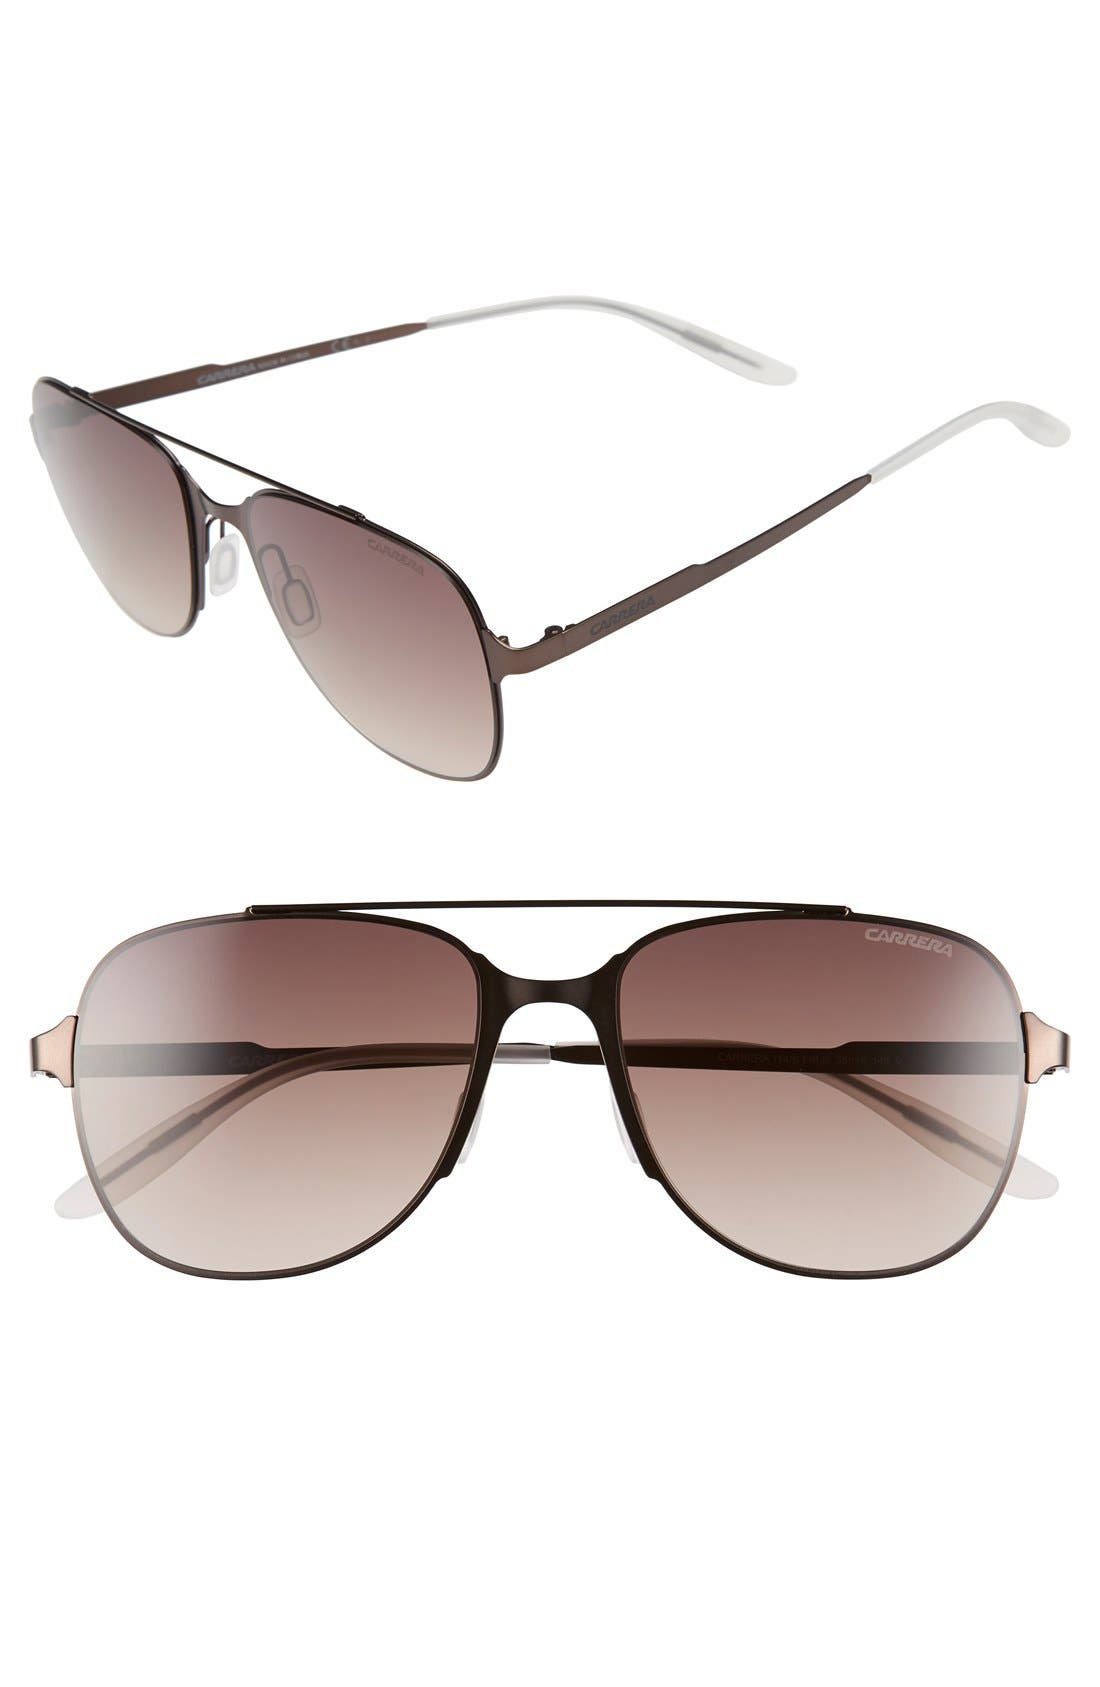 Alternate Image 1 Selected - Carrera Eyewear '114/S' 55mm Sunglasses